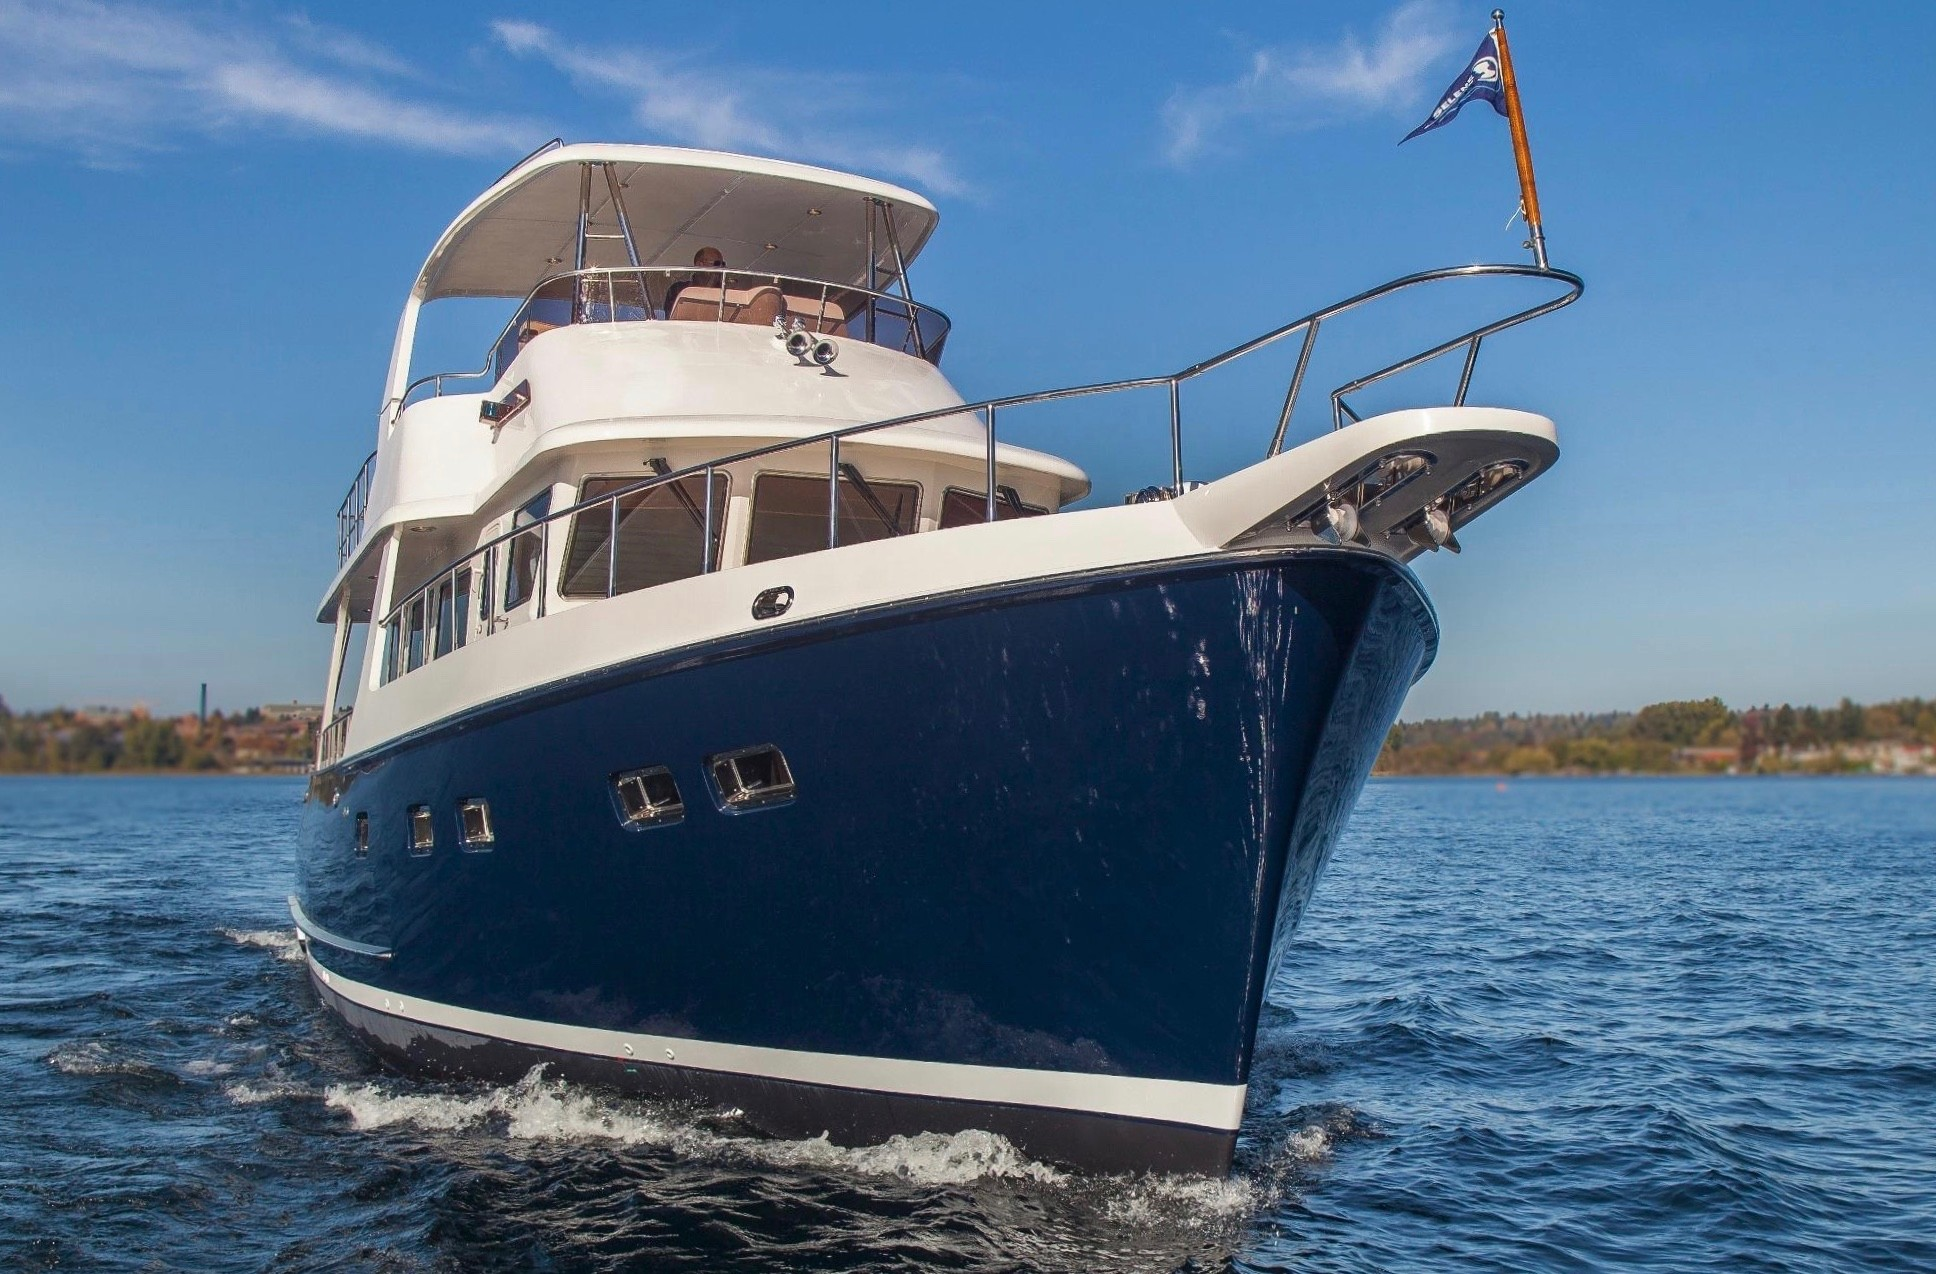 Selene 50 Voyager Sedan - A well-equipped yacht bound for Exotic Places